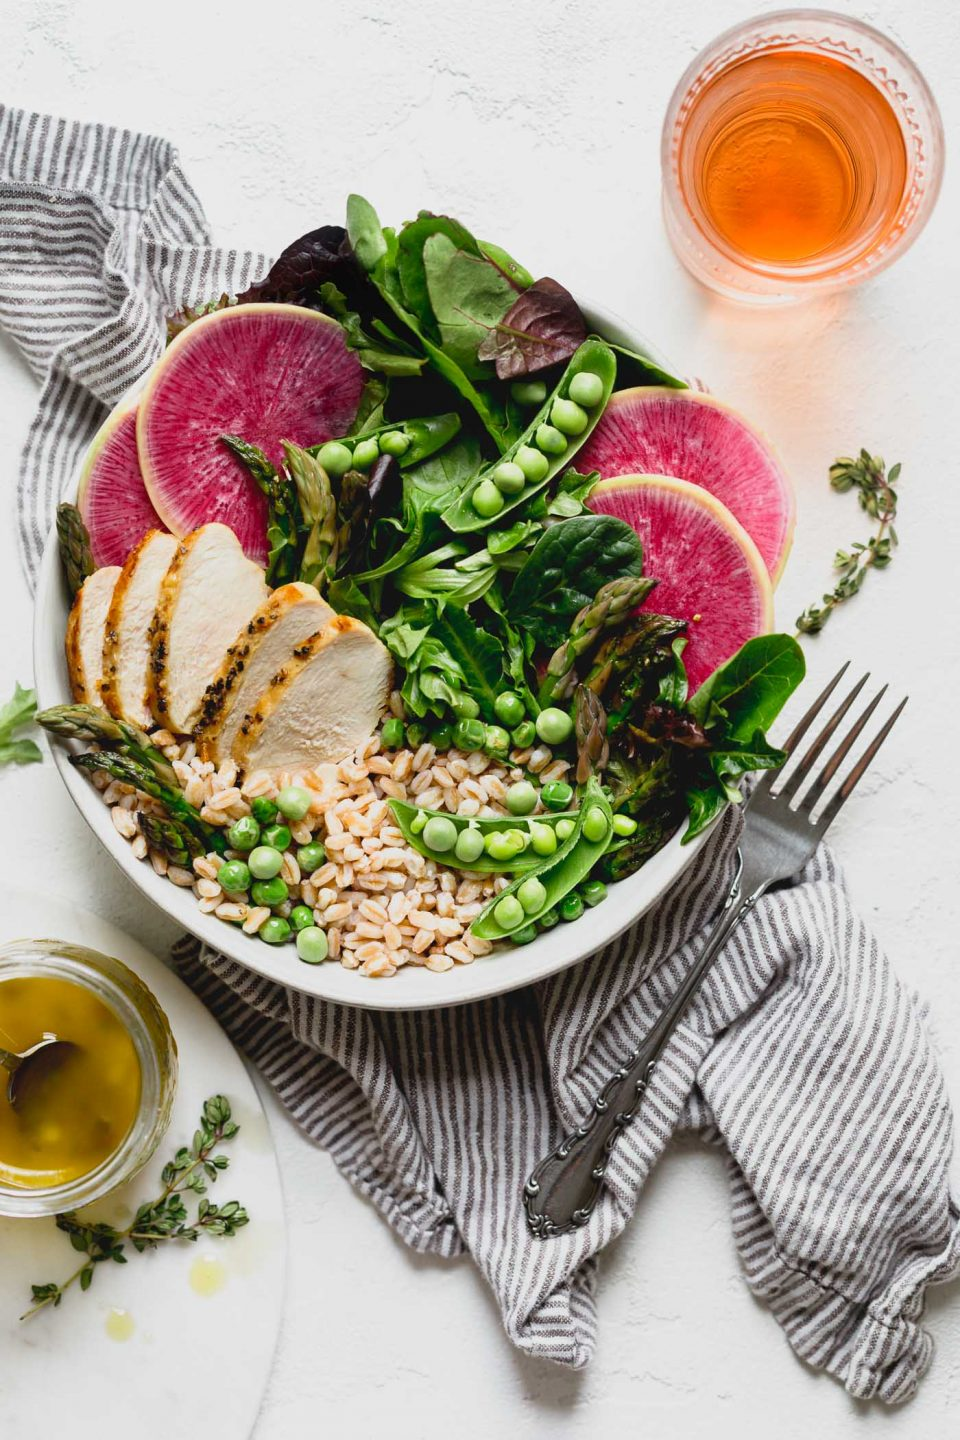 a healthy & seasonal springtime grain bowl with farro, asparagus, spring peas, greens, herbed chicken & a simple homemade lemon vinaigrette. this spring goddess grain bowl recipe is totally wholesome, meal prep friendly, & comes together in 30 minutes or less. the perfect easy weeknight dinner for this spring! #grainbowl #healthygrainbowl #saladrecipe #mealpreprecipe #springrecipe #asparagus #springpeas